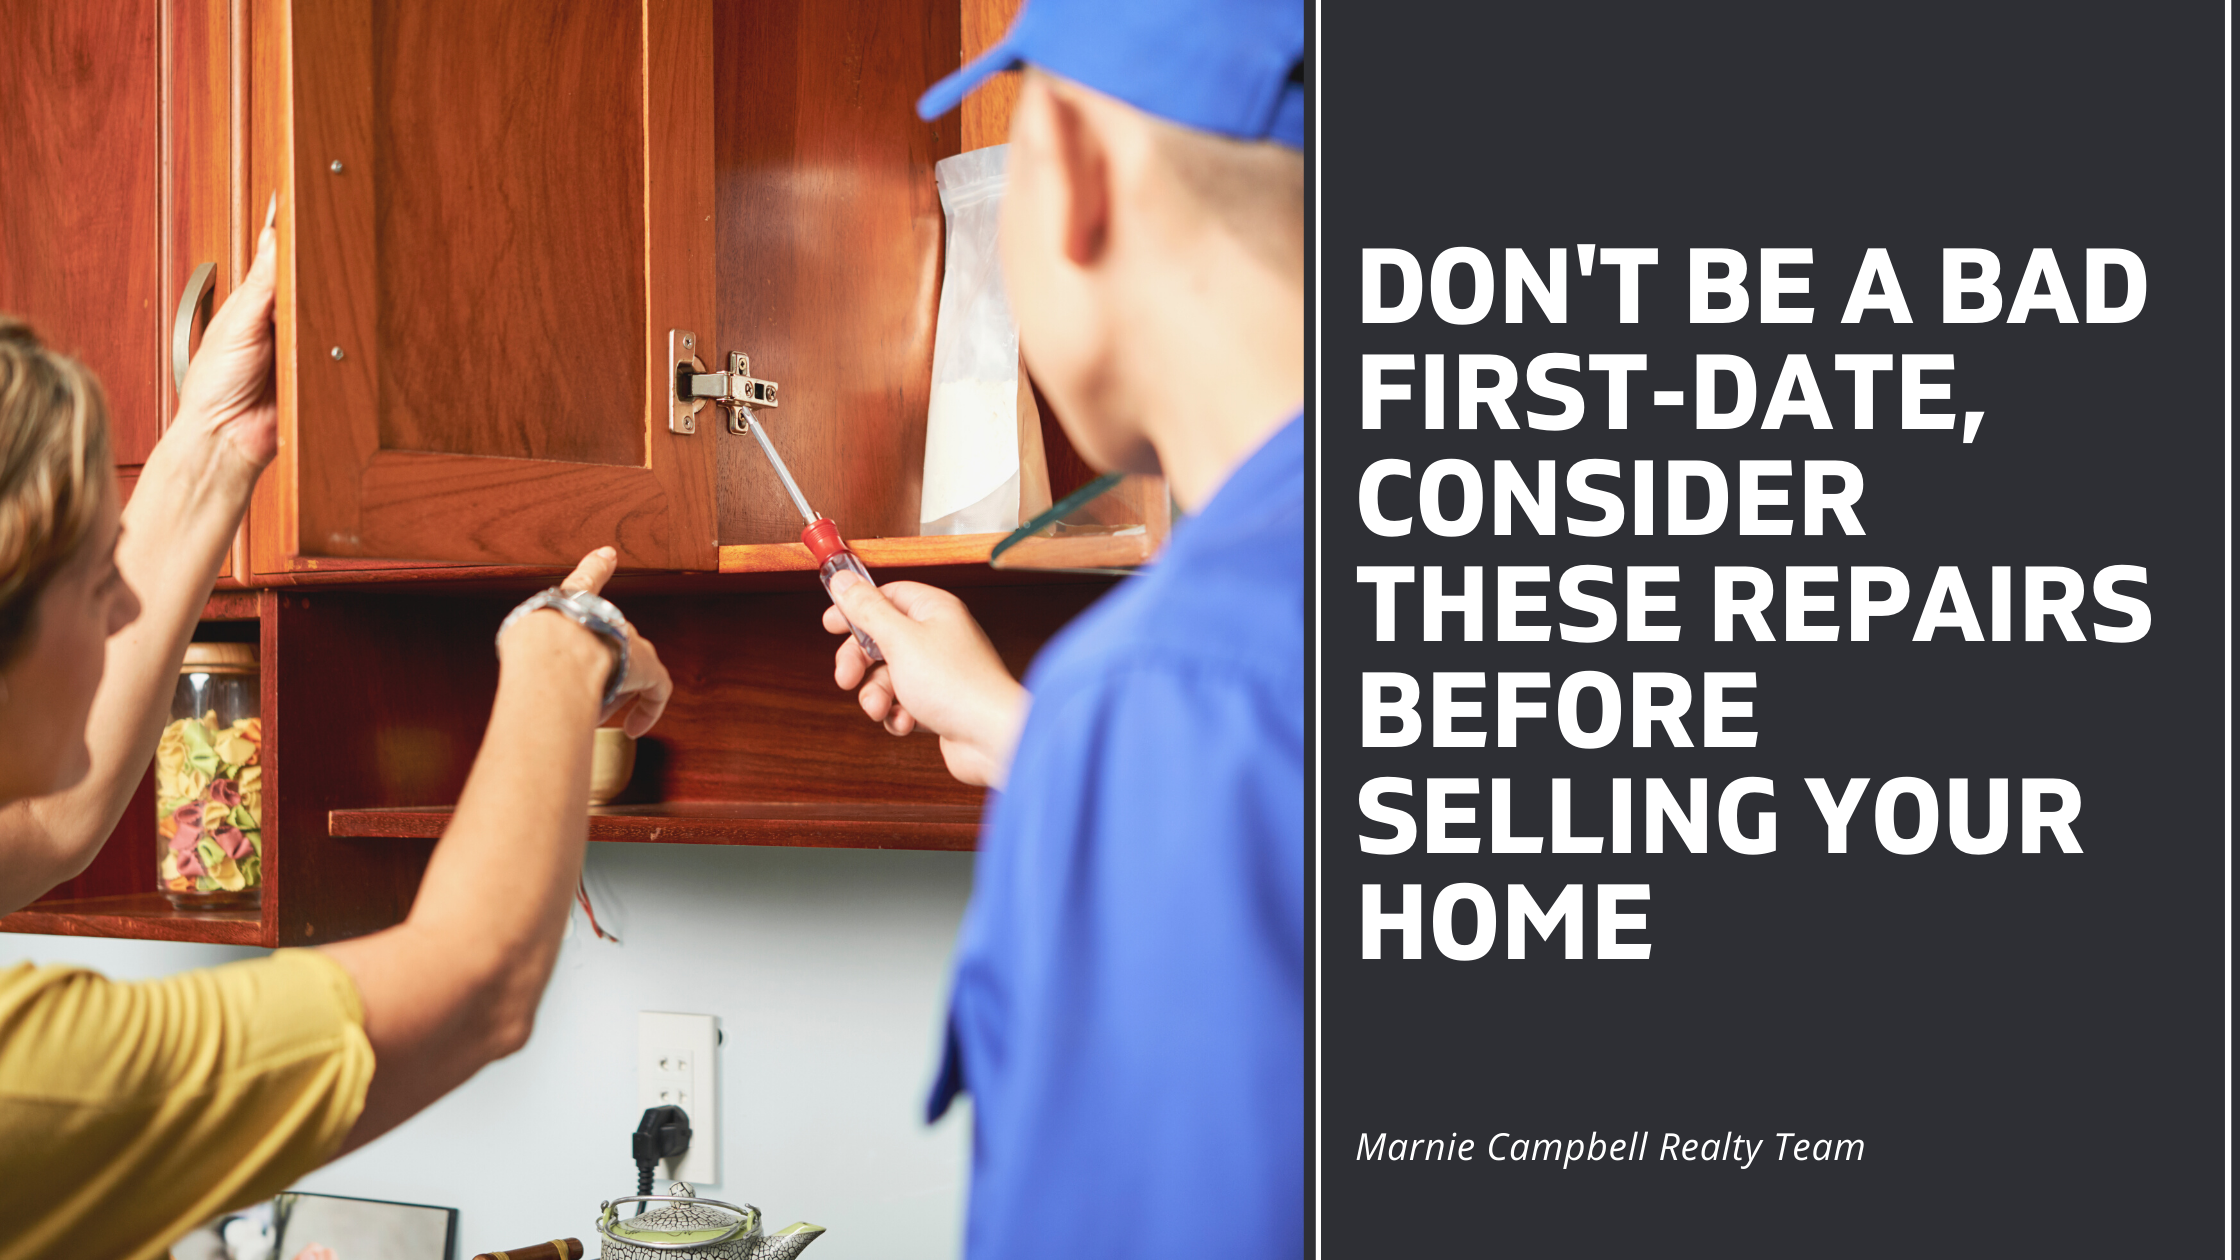 Don't Be A Bad First-Date, Consider These Repairs Before Selling Your Home